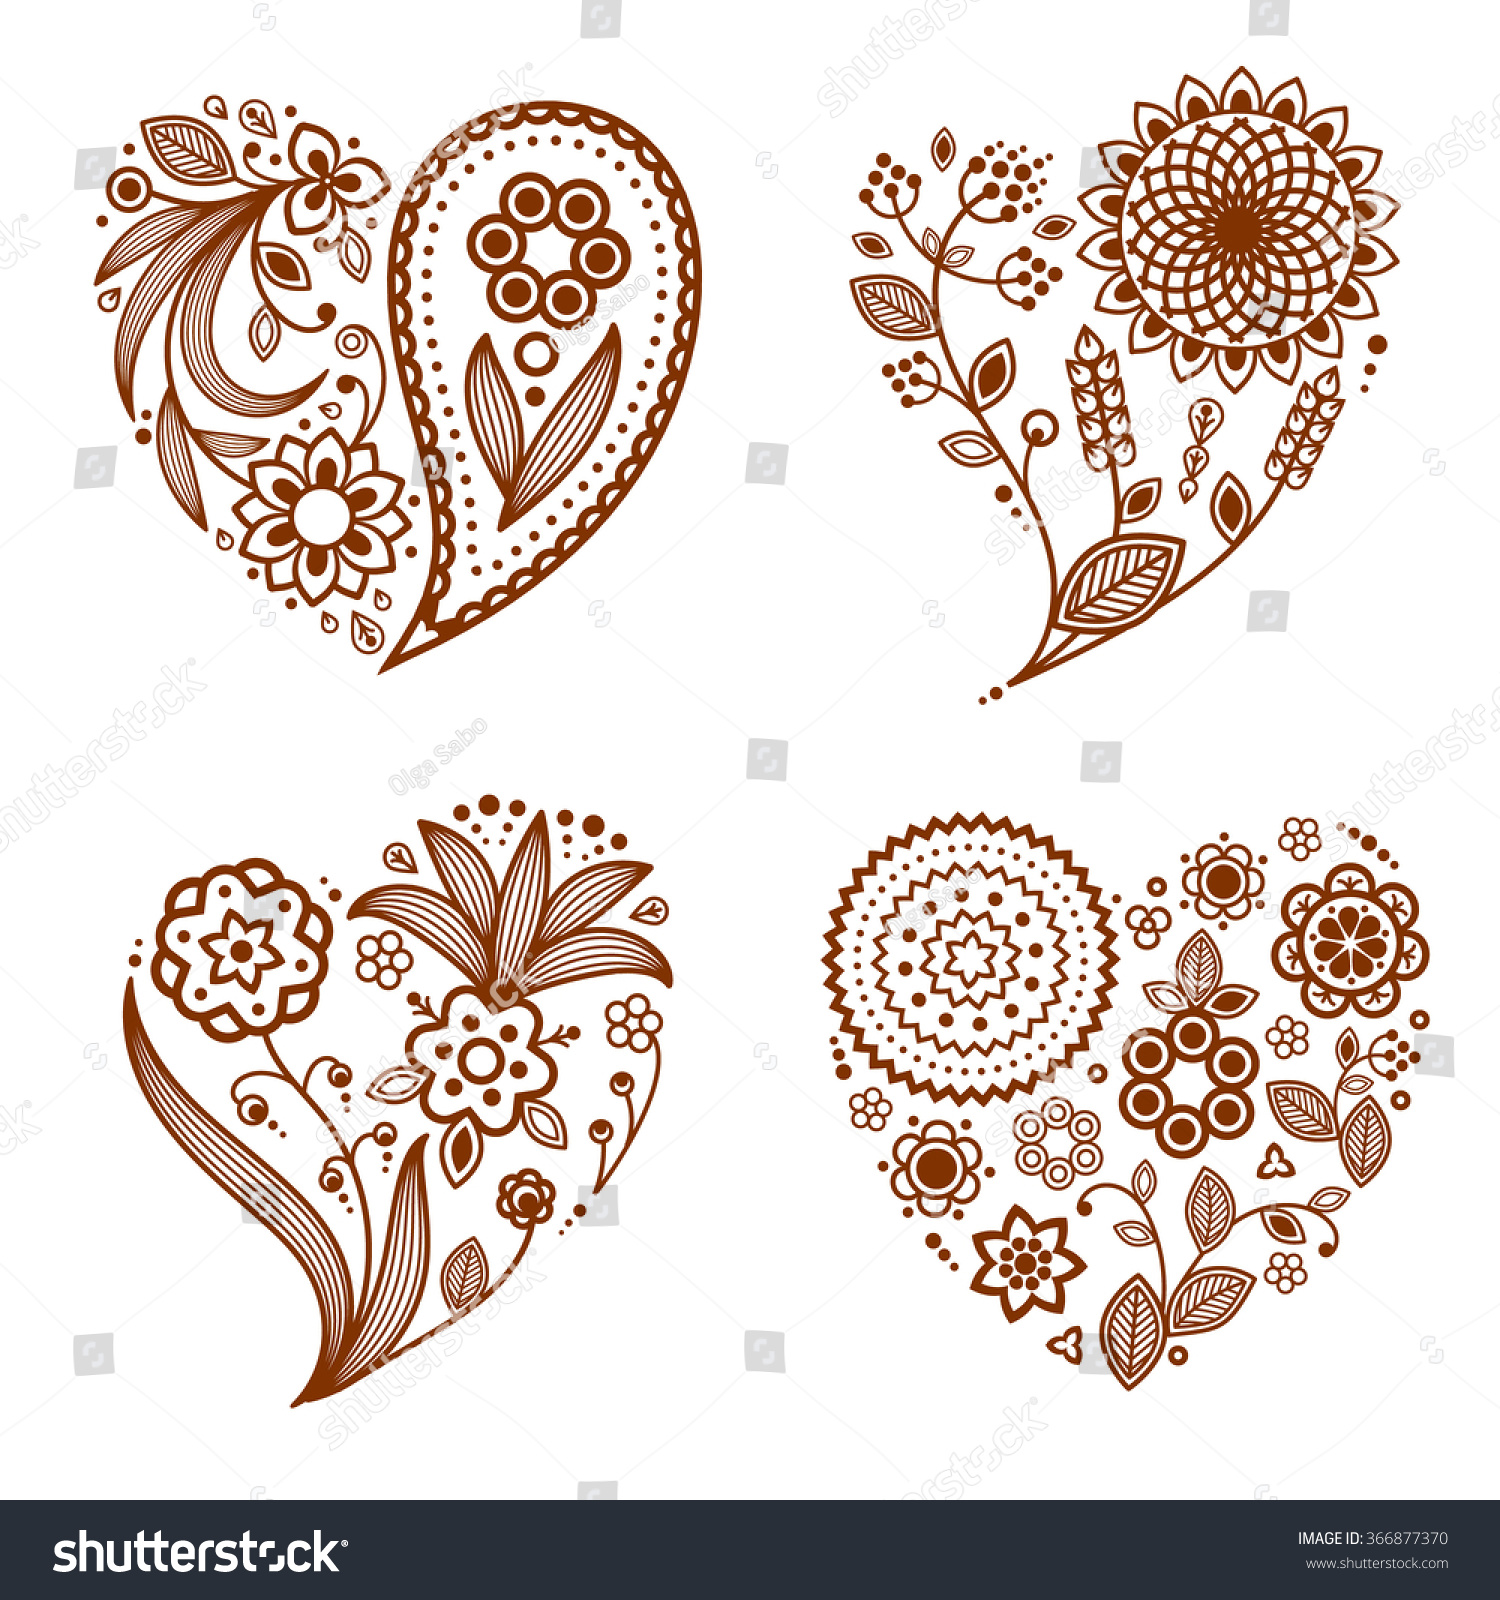 Heart Henna Tattoos: Henna Tattoo Ornamental Hearts Mehndi Style Four Stock